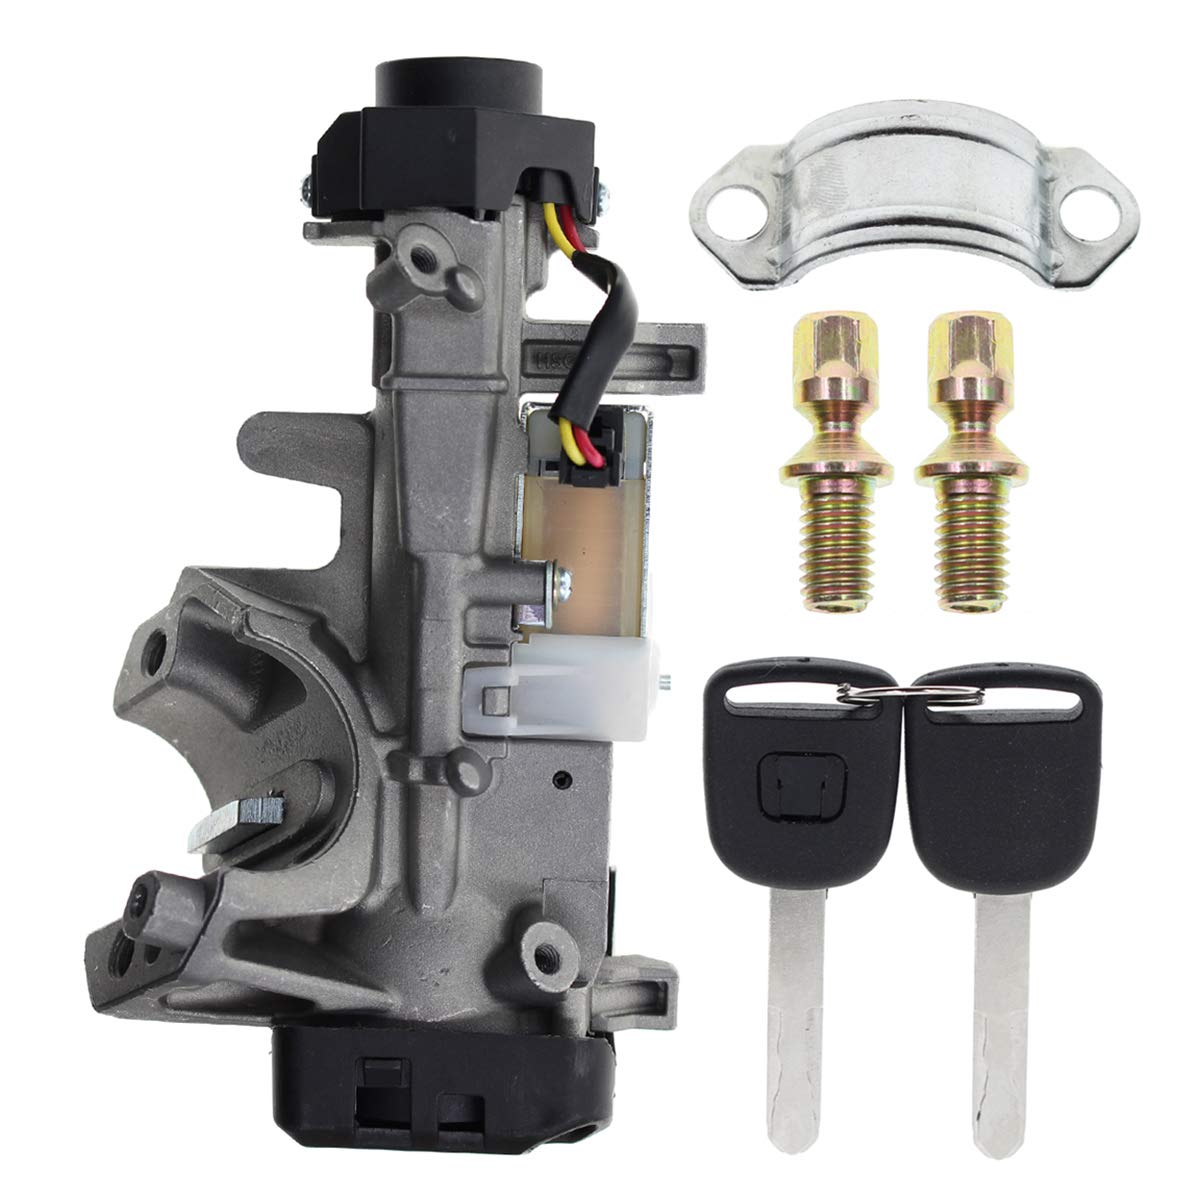 Amazon Com Autokay Ignition Switch Lock Cylinder 35100 Sda A71auto Trans With 2 Chip Keys For Honda Accord Civic Crv Odyssey Industrial Scientific